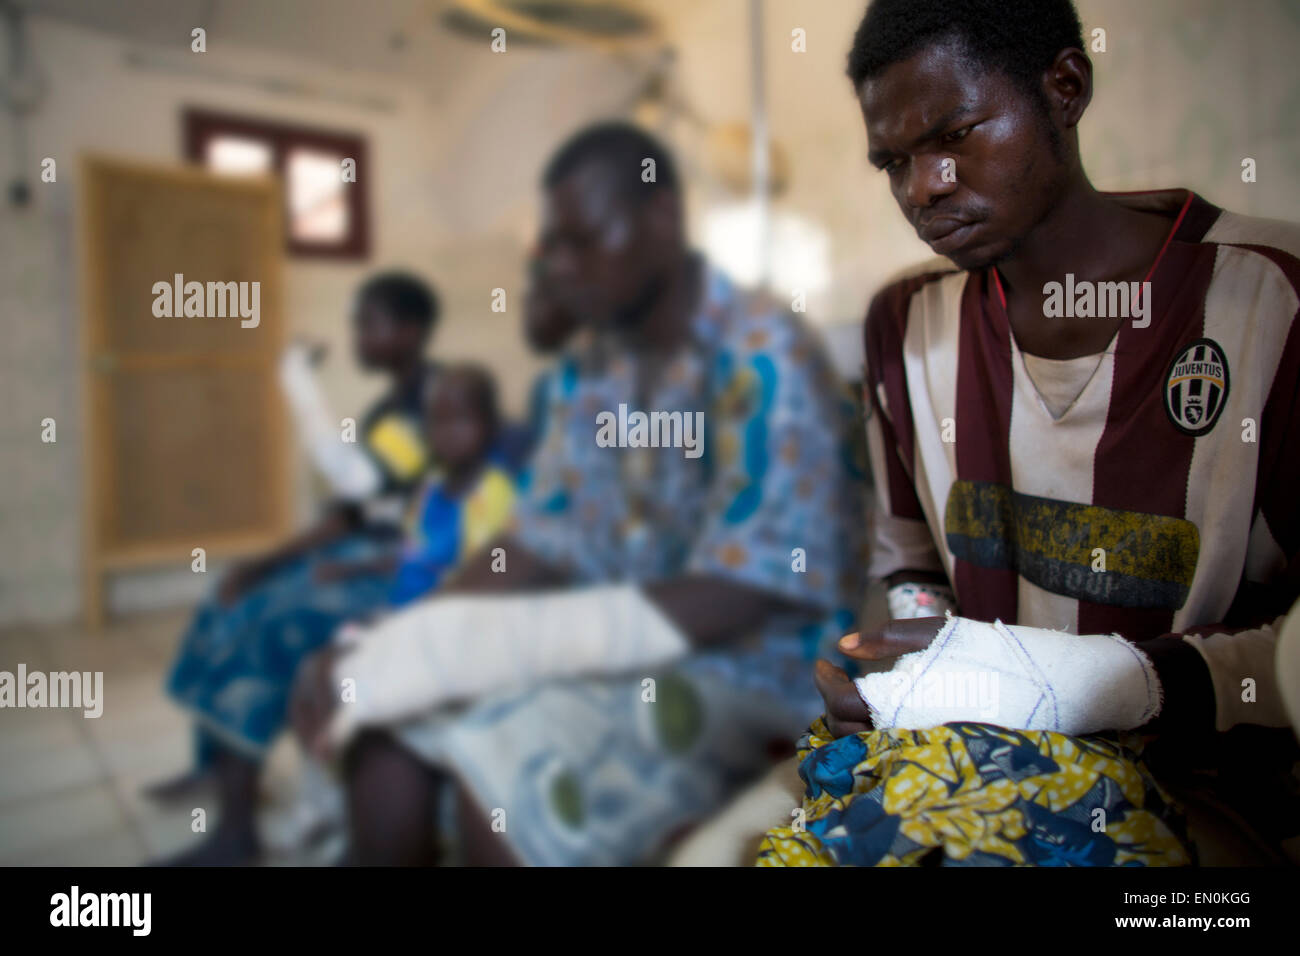 Emergency Health Care in Central African Republic Stock Photo